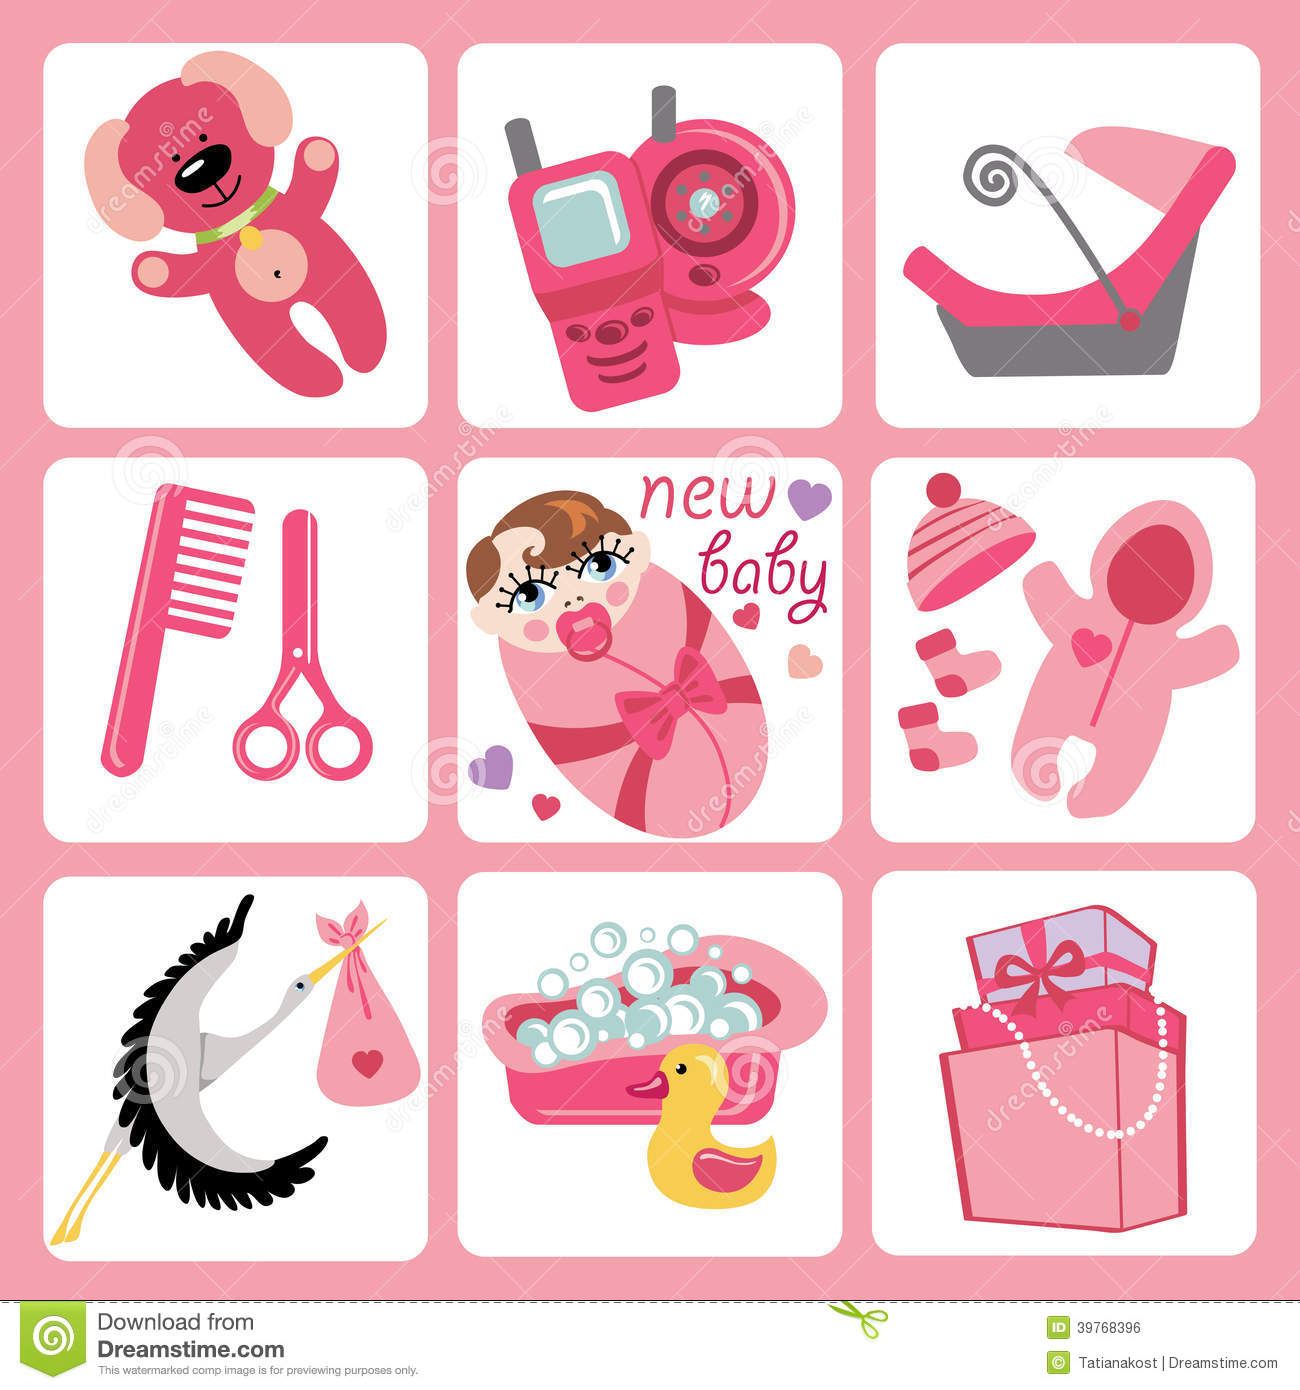 cute cartoons icons for european baby girl newborn stock baby clothes clipart free baby clothes clipart free